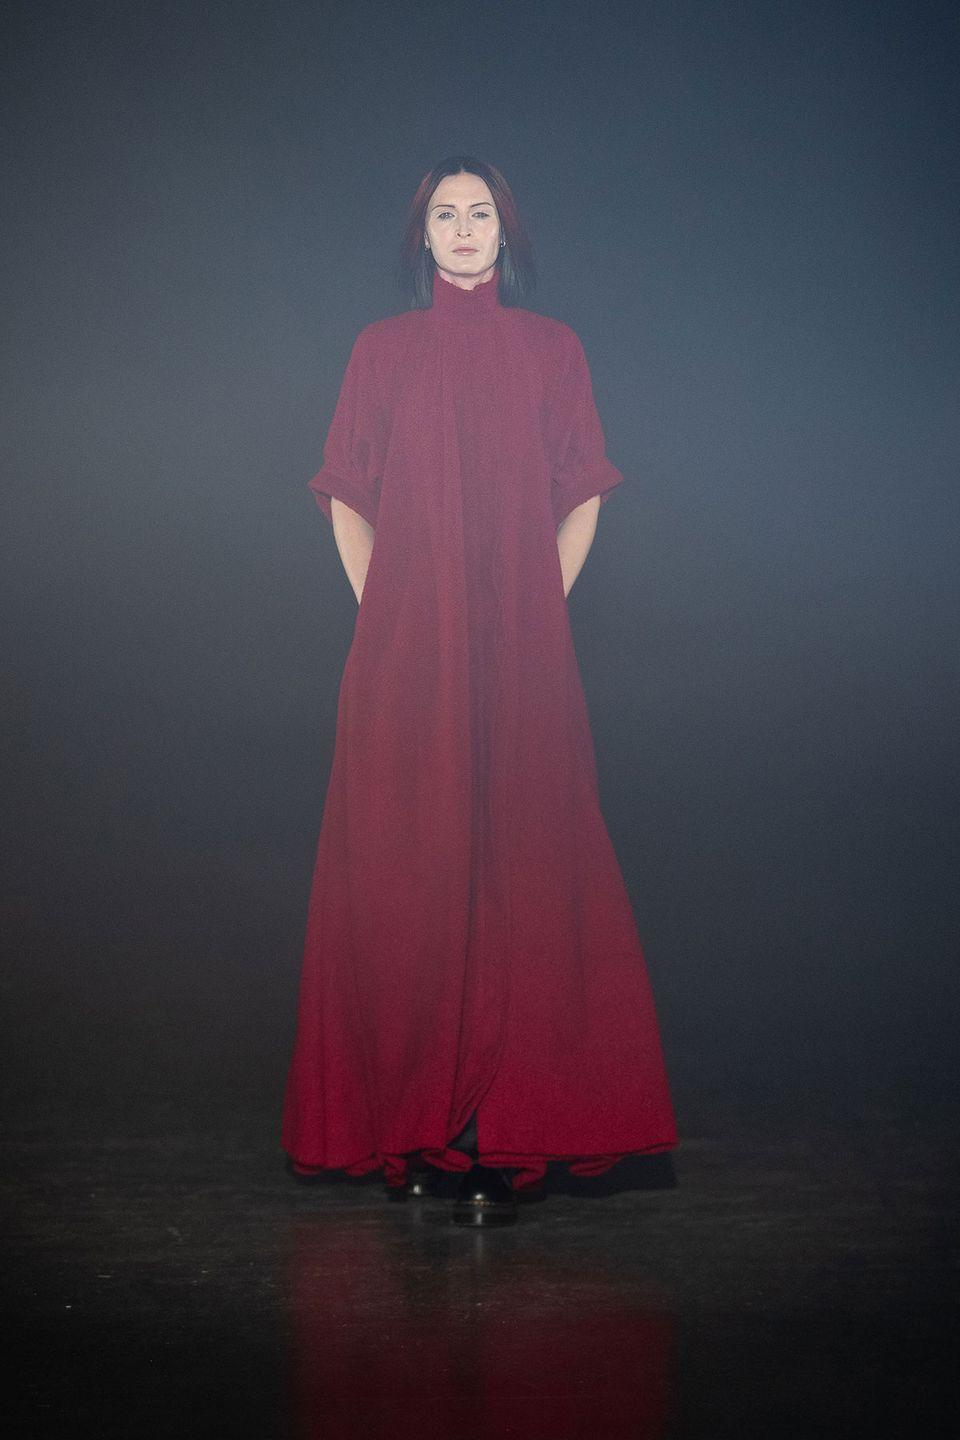 """<p>Fashion isn't always democratic, but Art School's Eden Loweth is firmly of the camp that, while not exactly one-size-fits-all, inclusivity must have a seat at the table. The aim was to make clothes """"tolerant and easy to wear for all bodies and genders,"""" an order achieved by beautiful dresses cut on the bias, draping, and expert tailoring (and supported by the phenomenally diverse casting spearheaded by the organizers at London Trans Pride). With sweeping gowns and spots of sparkle, there's definitely some drama, but it's what one might call """"daytime drama""""—pieces that are meant to be worn and mixed in with real life. Every life.<em>—Leah Melby Clinton</em></p>"""